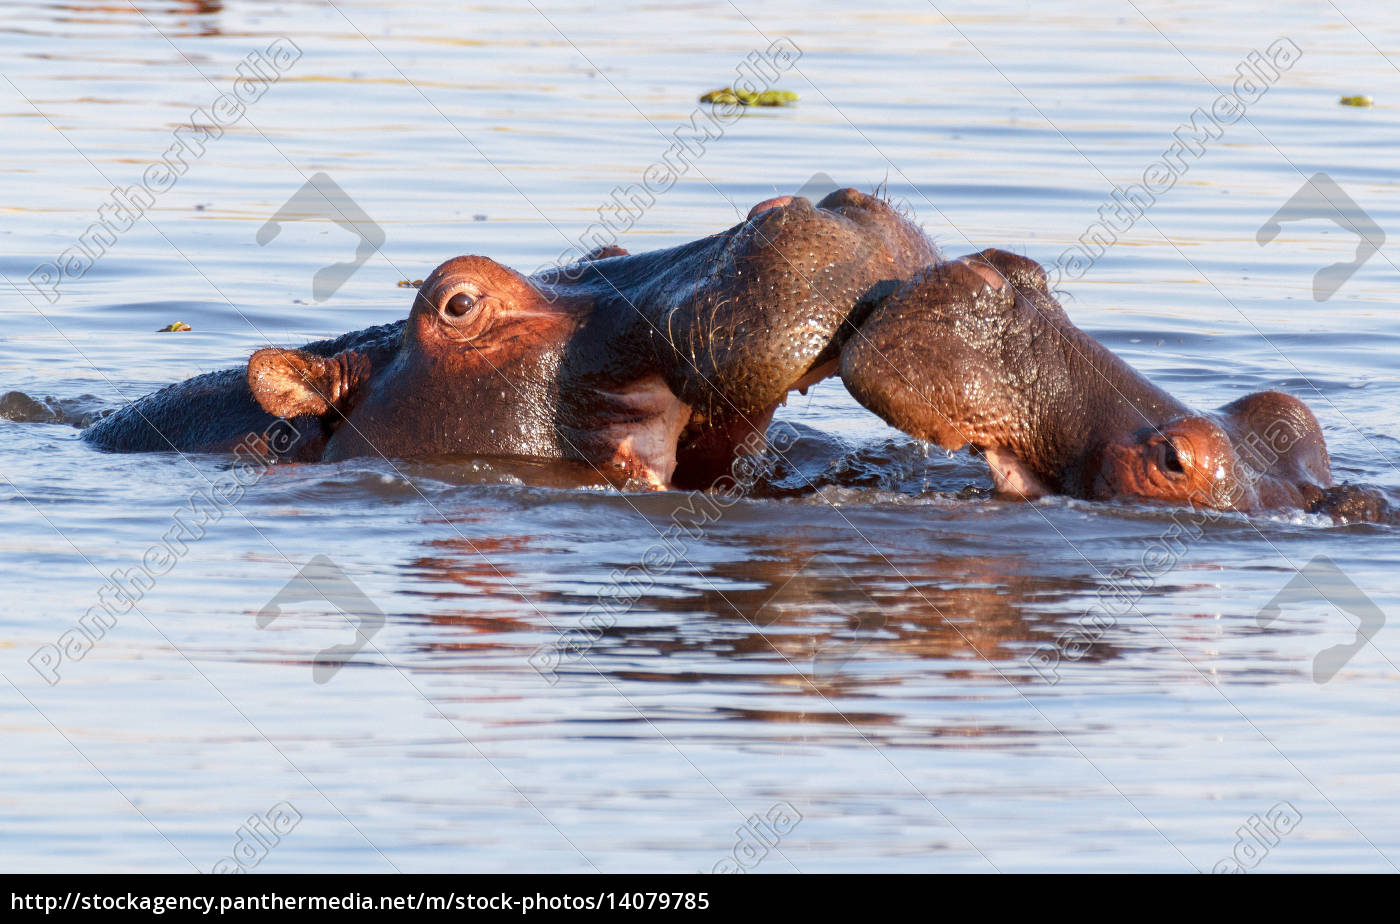 two, fighting, young, male, hippopotamus, hippopotamus - 14079785